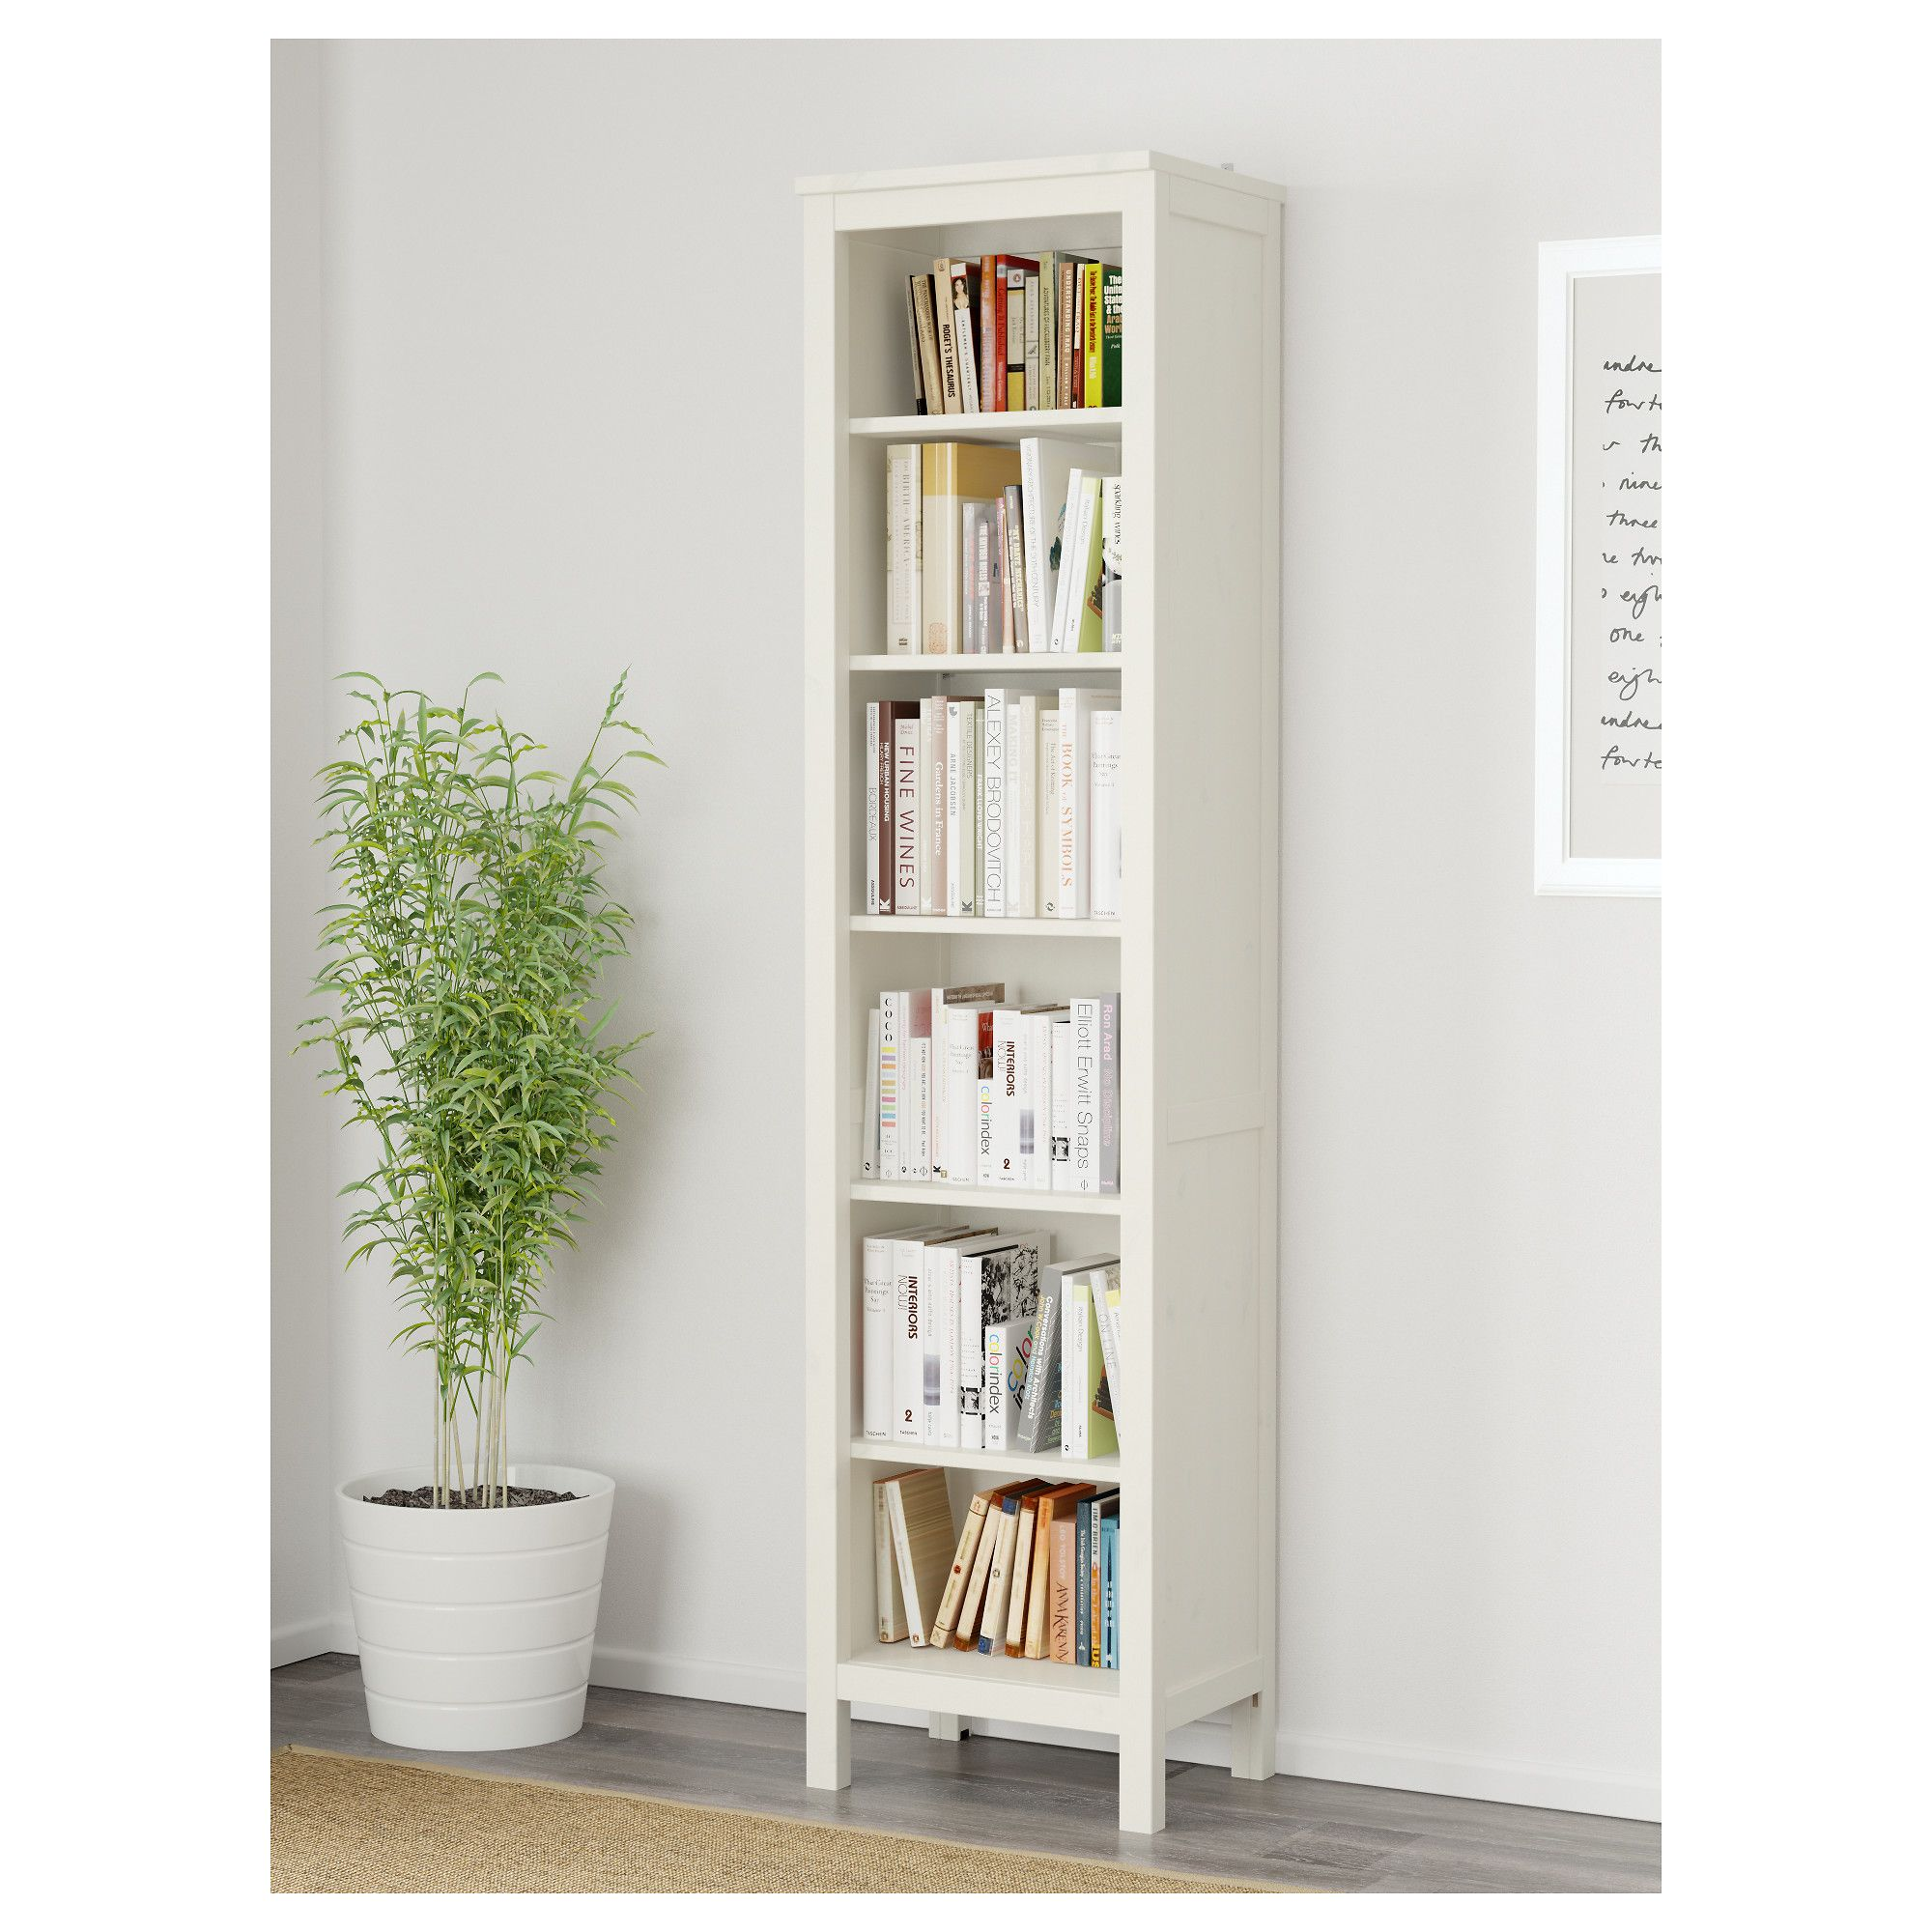 bookcase furniture frameless handballtunisie bookshelves door with mid small awesome l org modern doors century glass